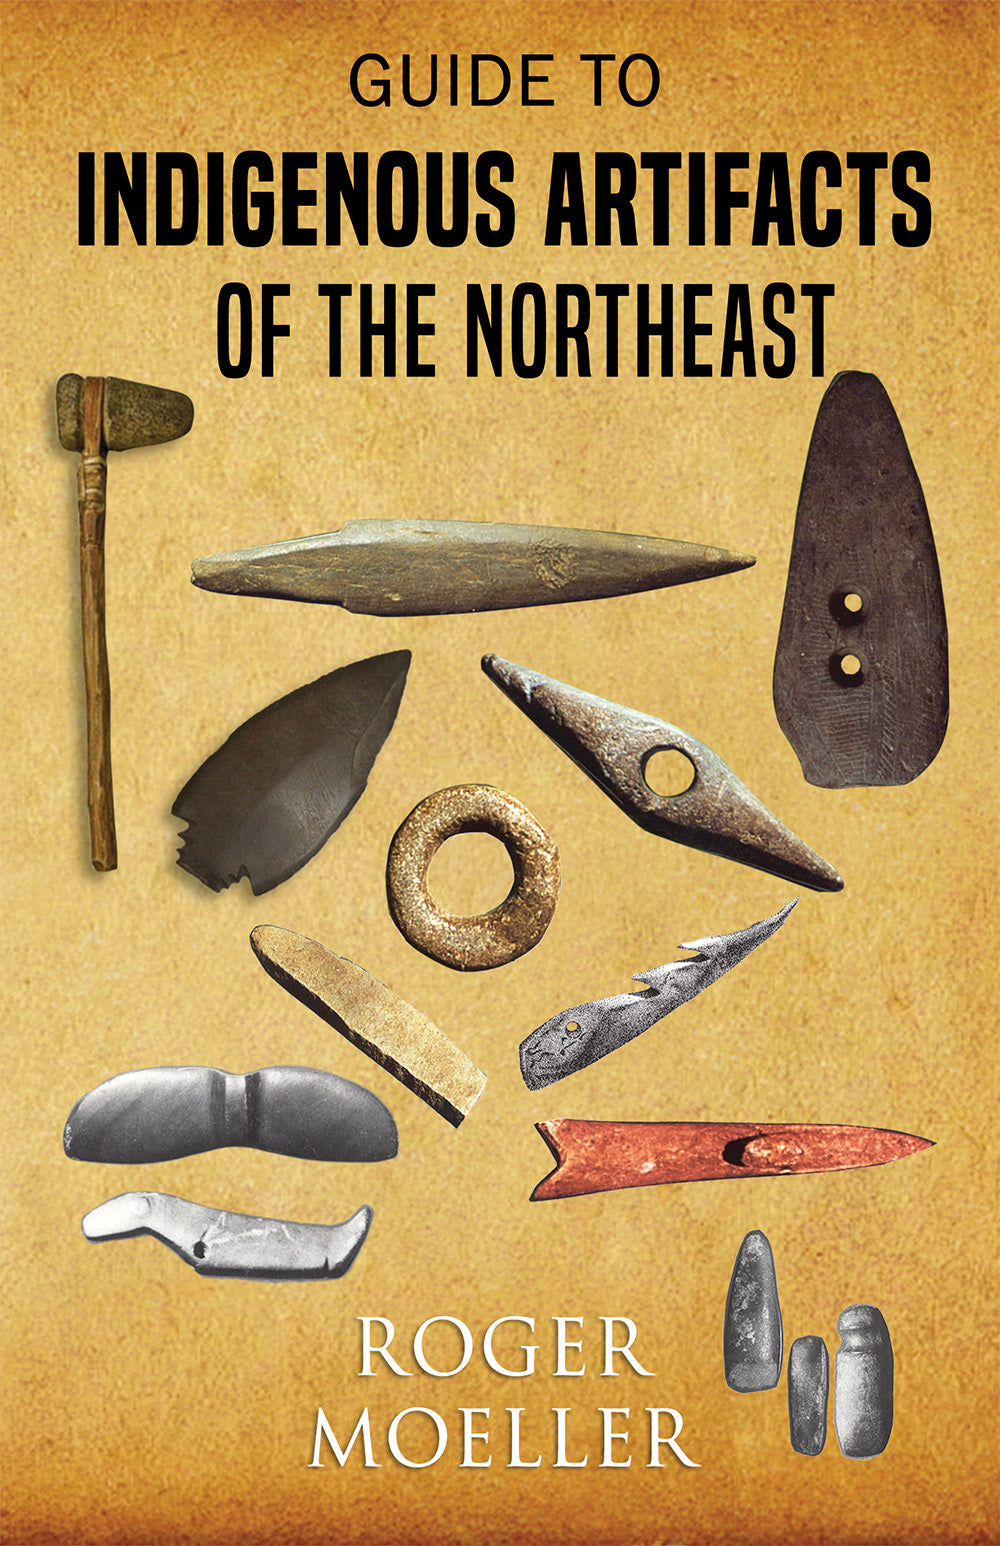 Guide to Indigenous Artifacts of the Northeast